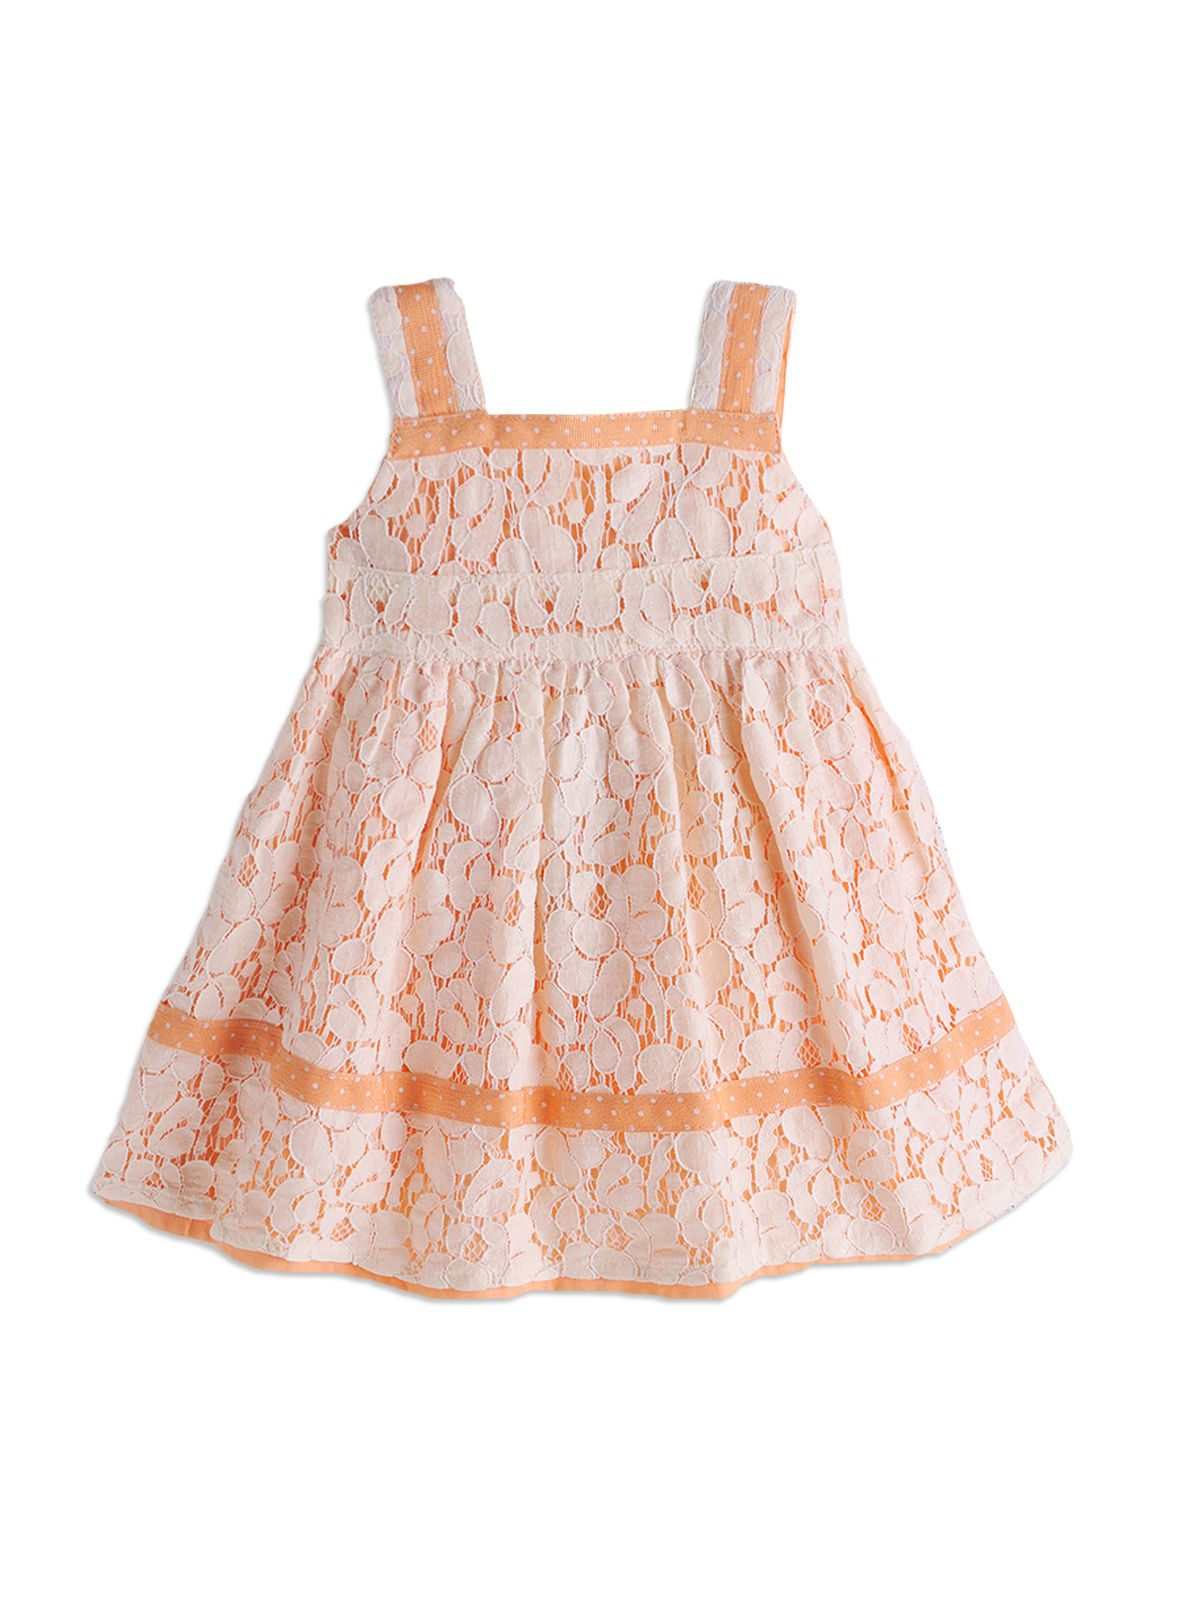 Girls contrast lace dress